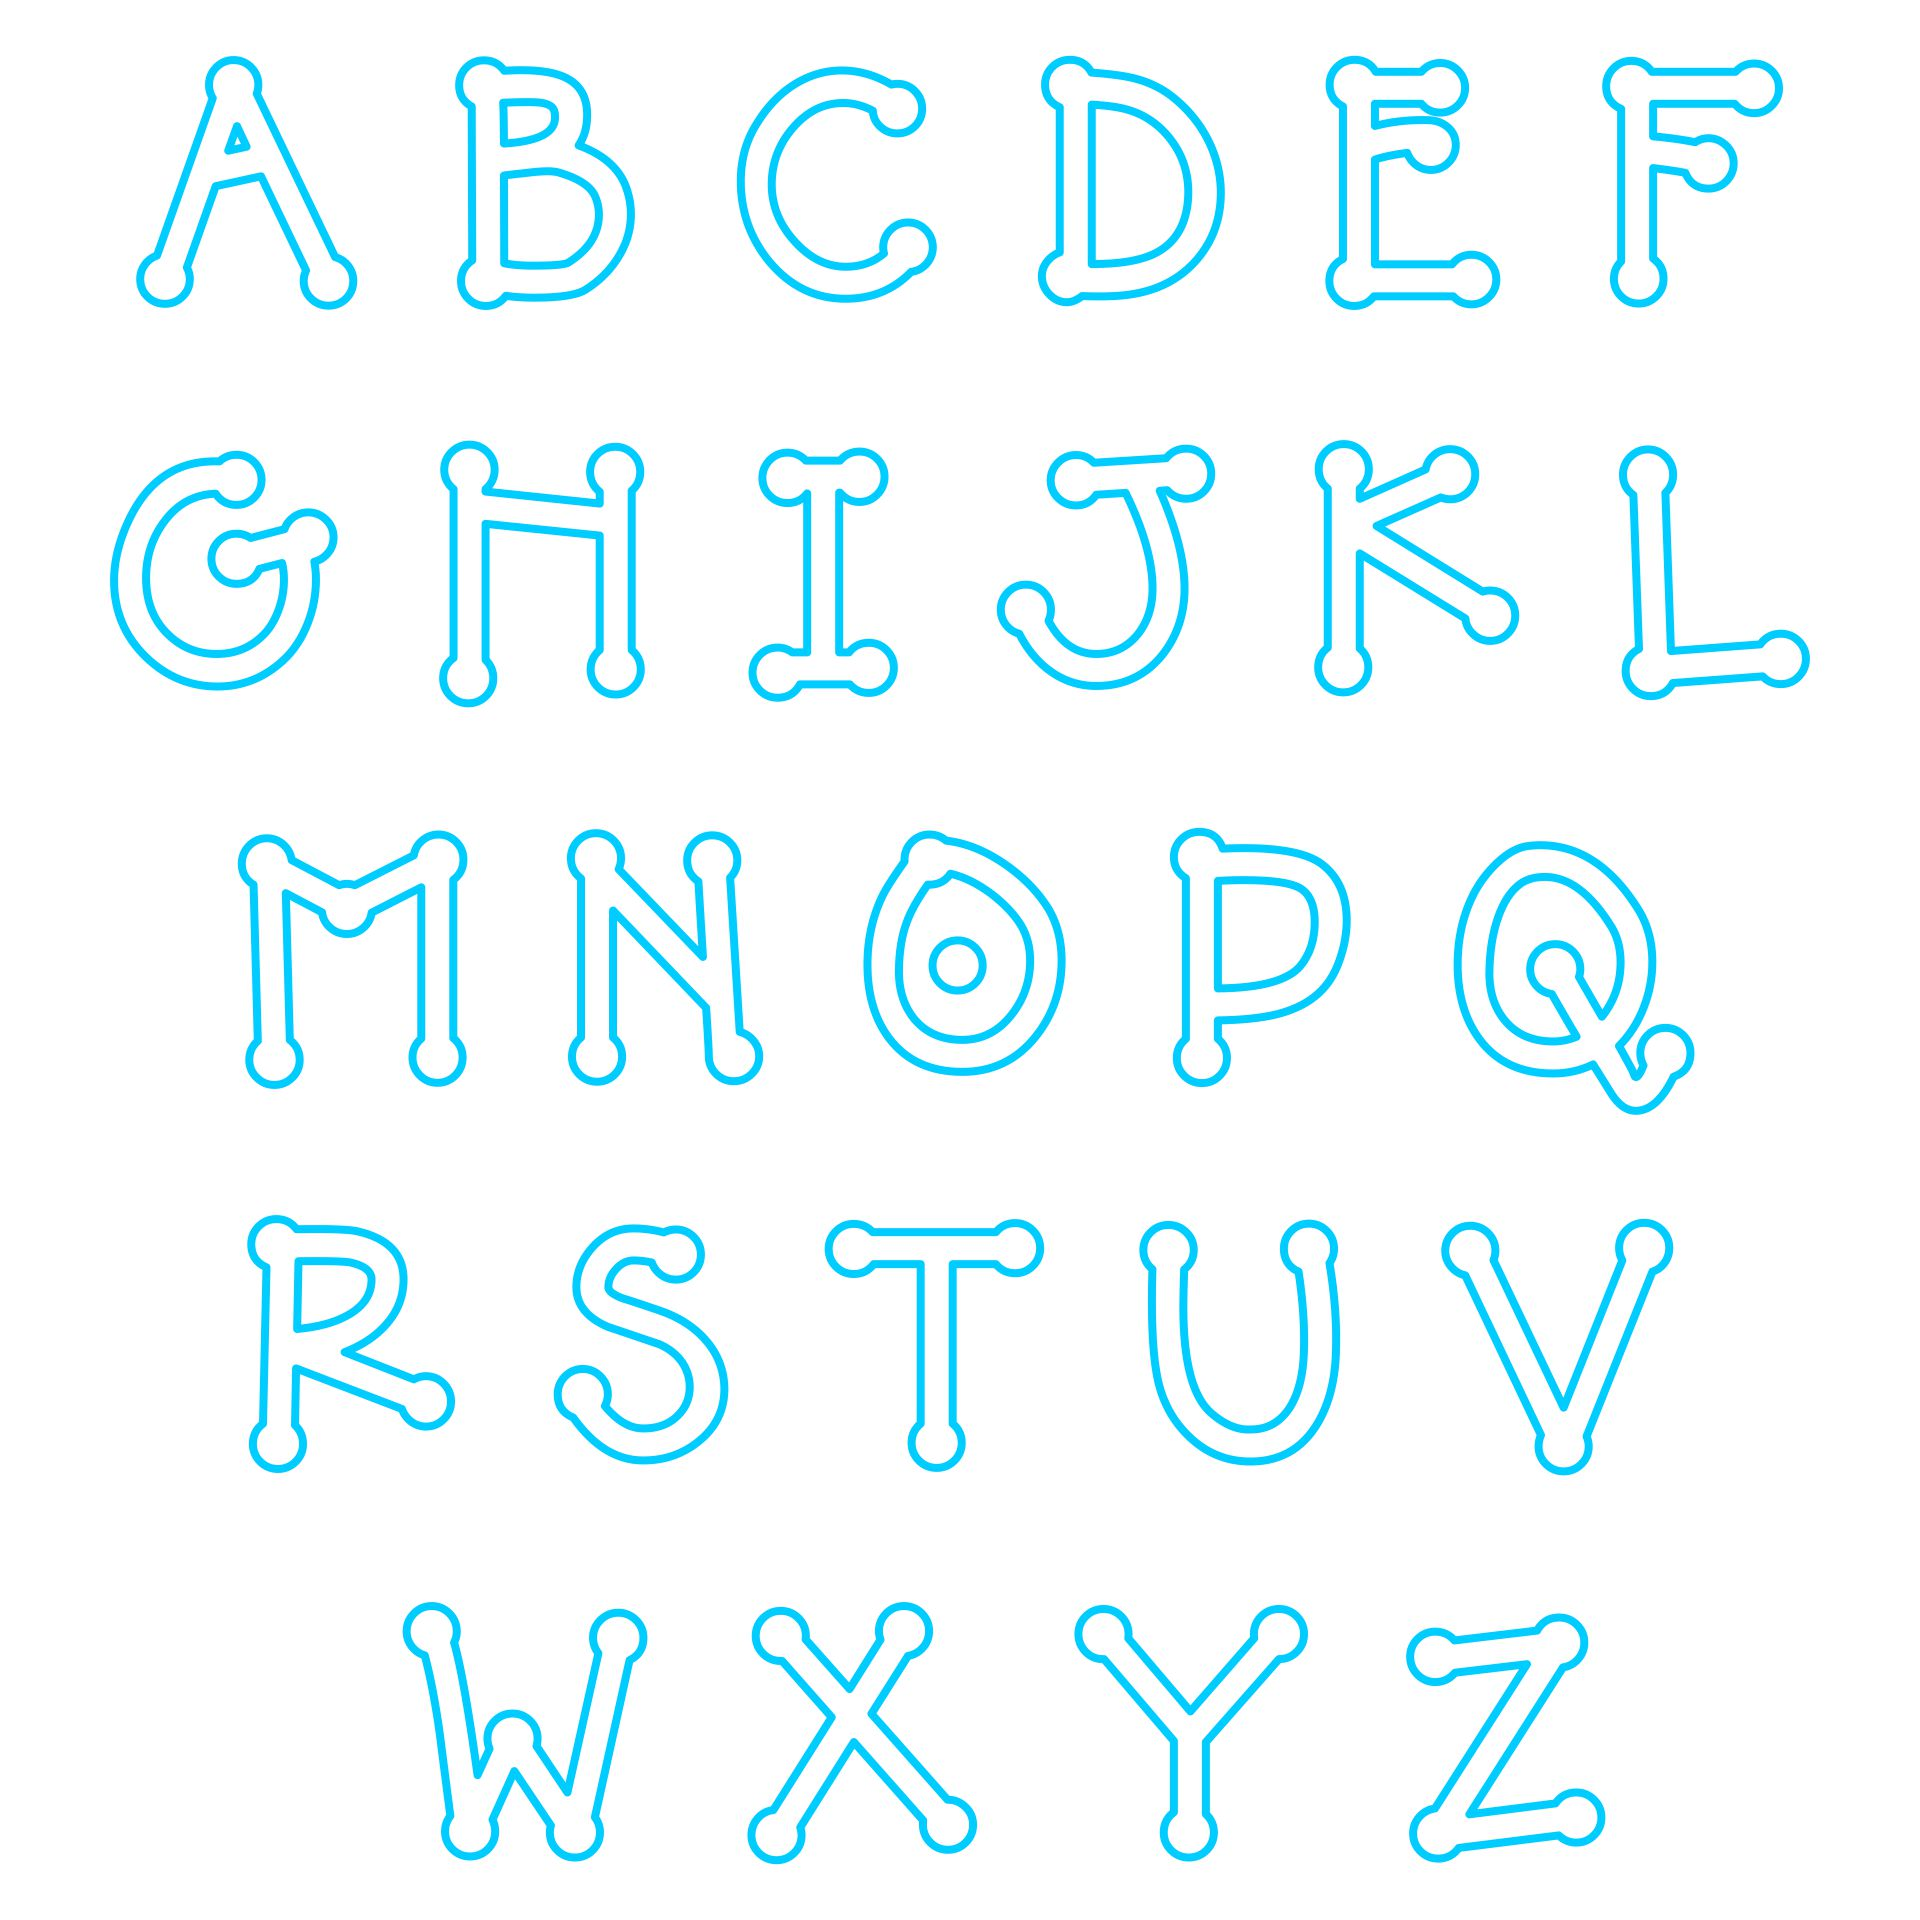 7 Best Images of Free Printable Alphabet Applique Patterns - Free Printable Alphabet Letter ...